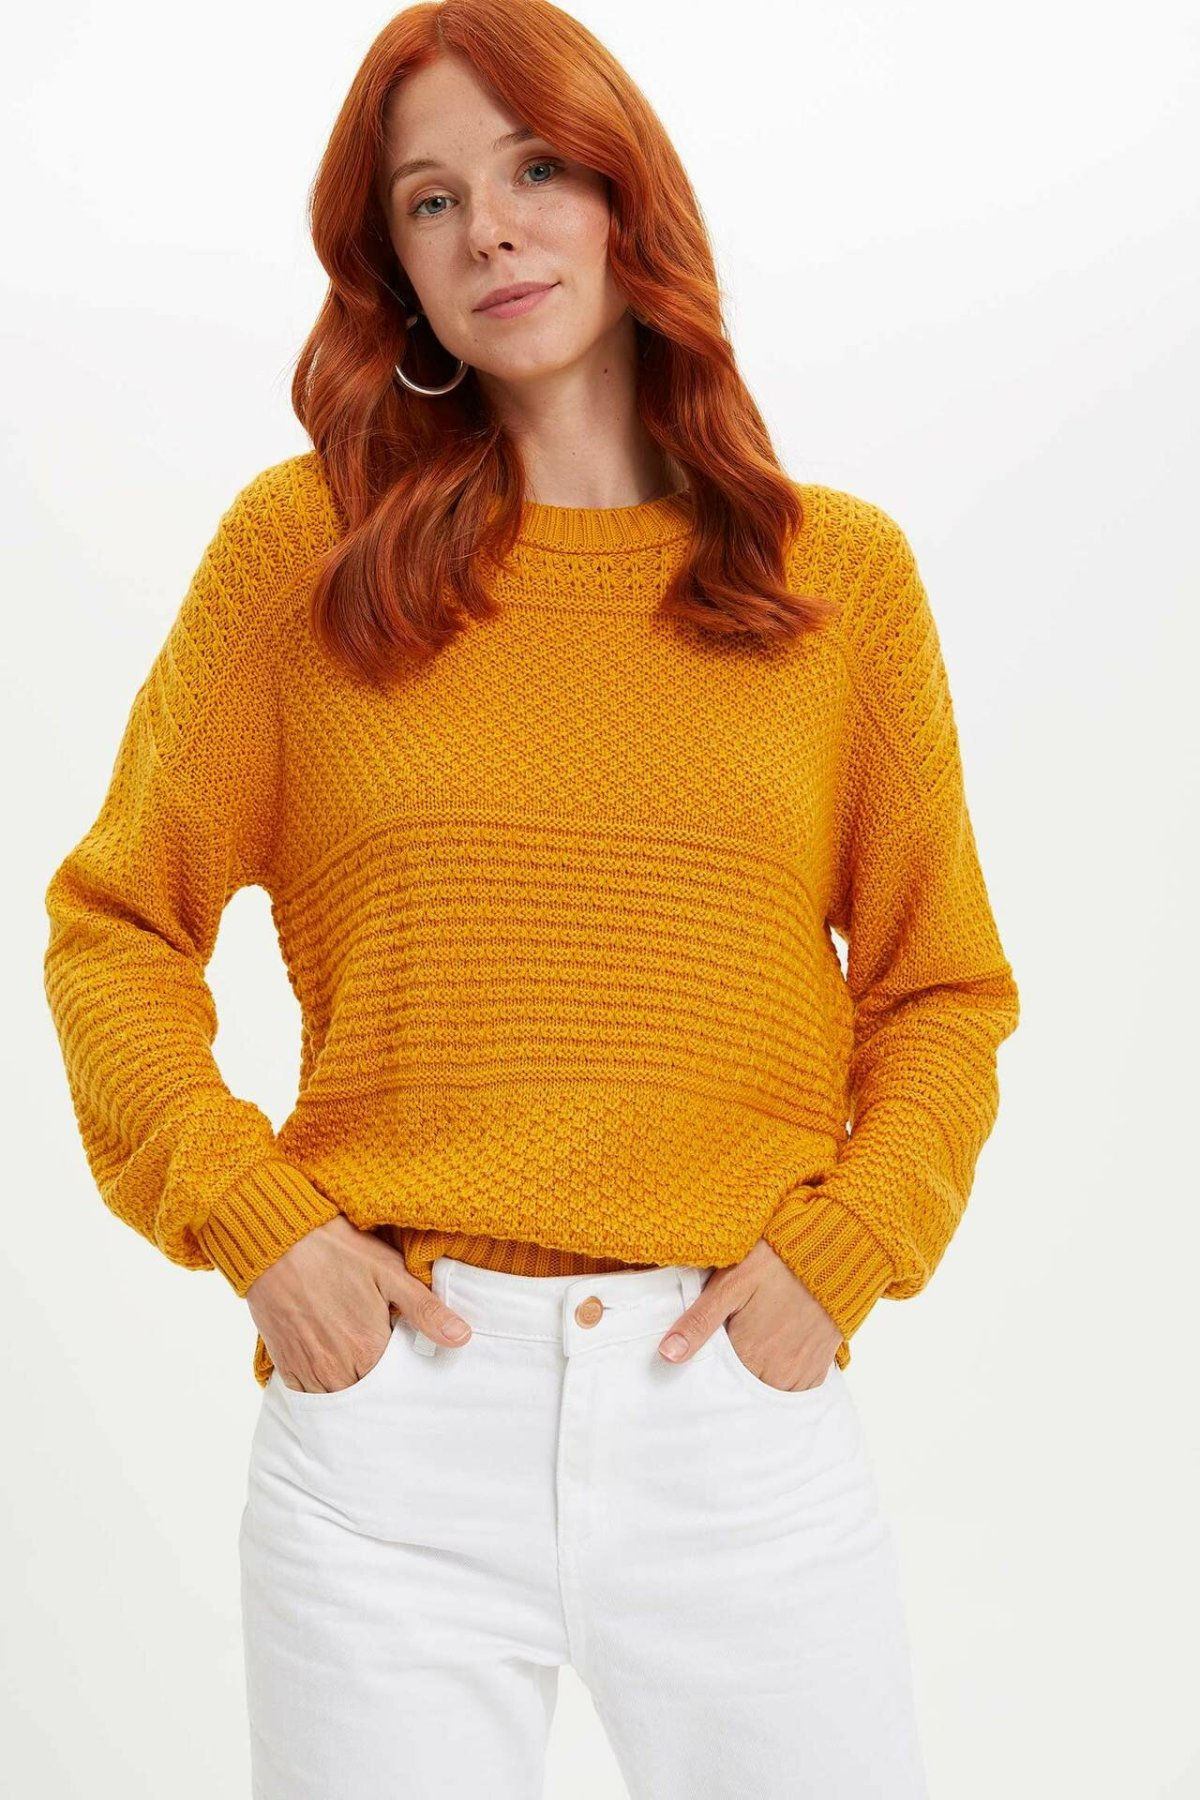 DeFacto Women Casual Crew Knitted Sweater Pure Color Sweater Joker Knitted Pullover Simple Women-L1565AZ19WN